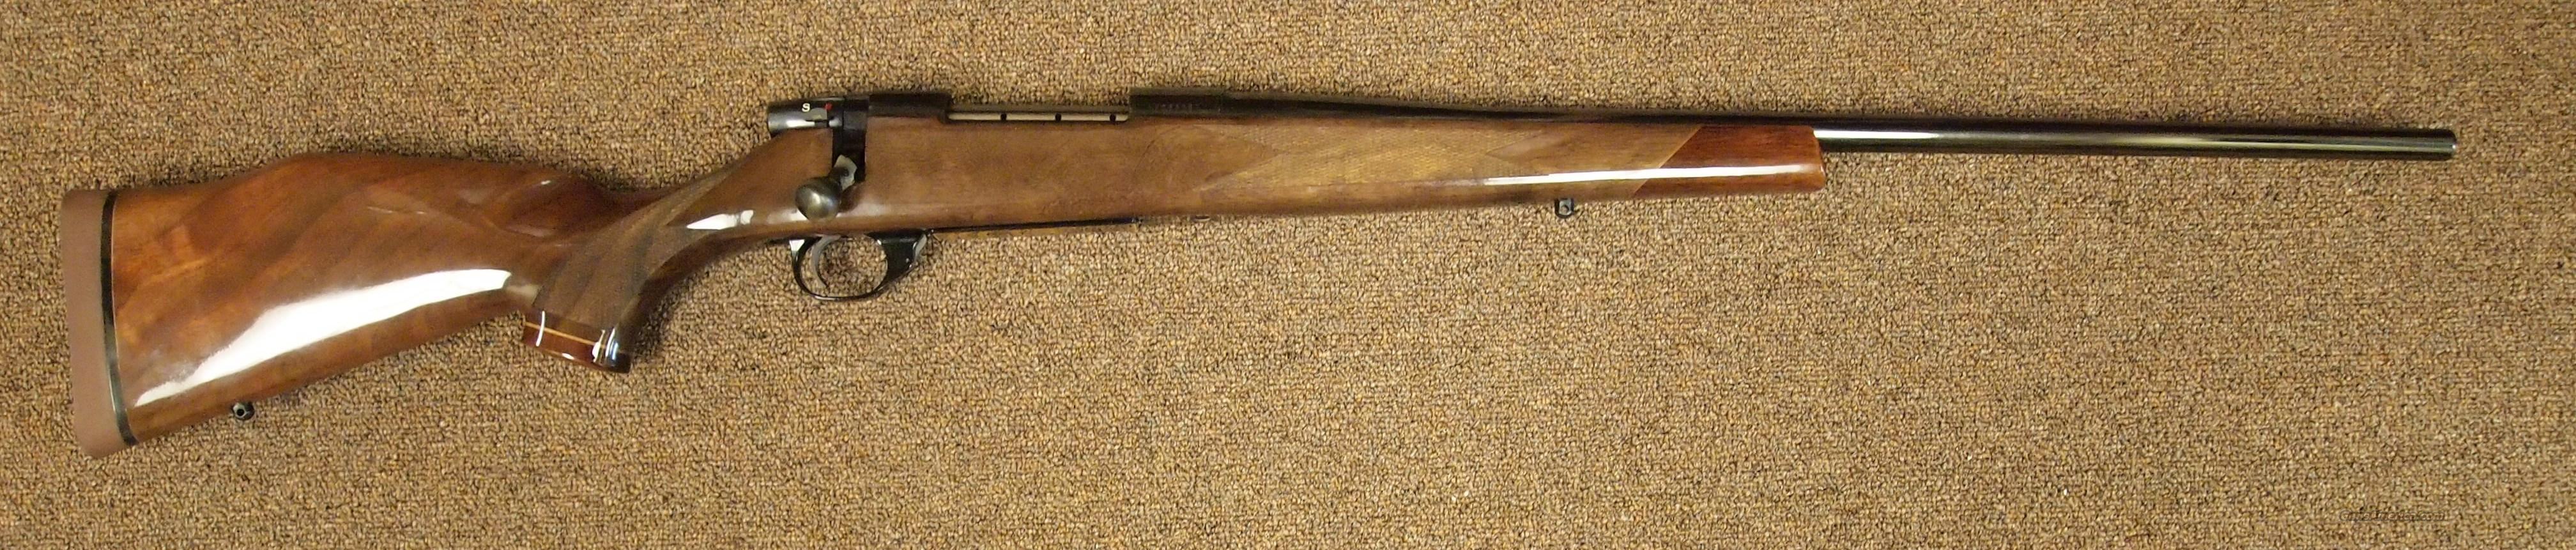 Weatherby Vanguard WTF .300 WBY  Guns > Rifles > Weatherby Rifles > Sporting